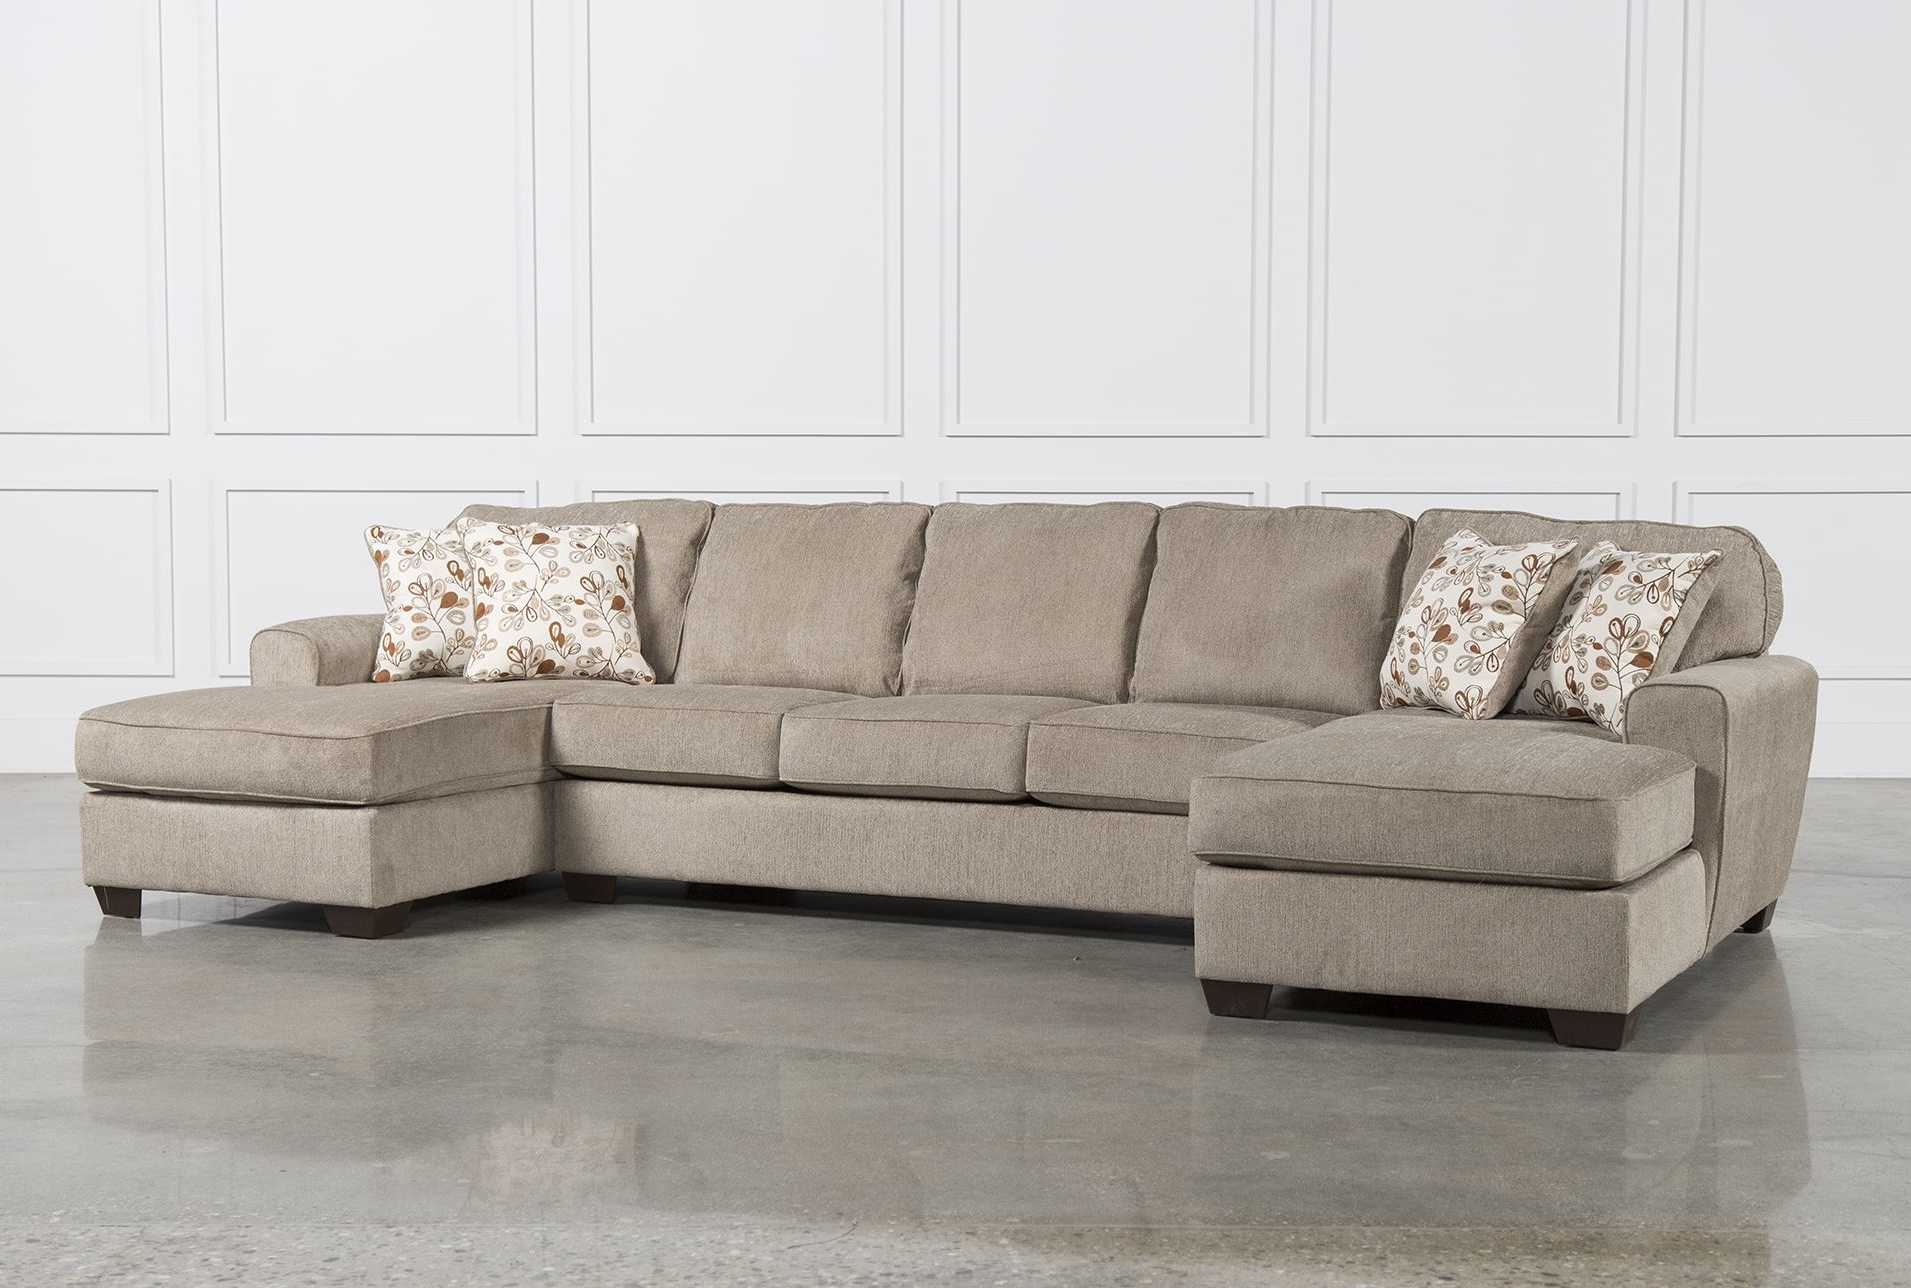 Sectional Sofa With 2 Chaises – Cleanupflorida Intended For Most Up To Date Sectional Sofas With 2 Chaises (View 3 of 15)